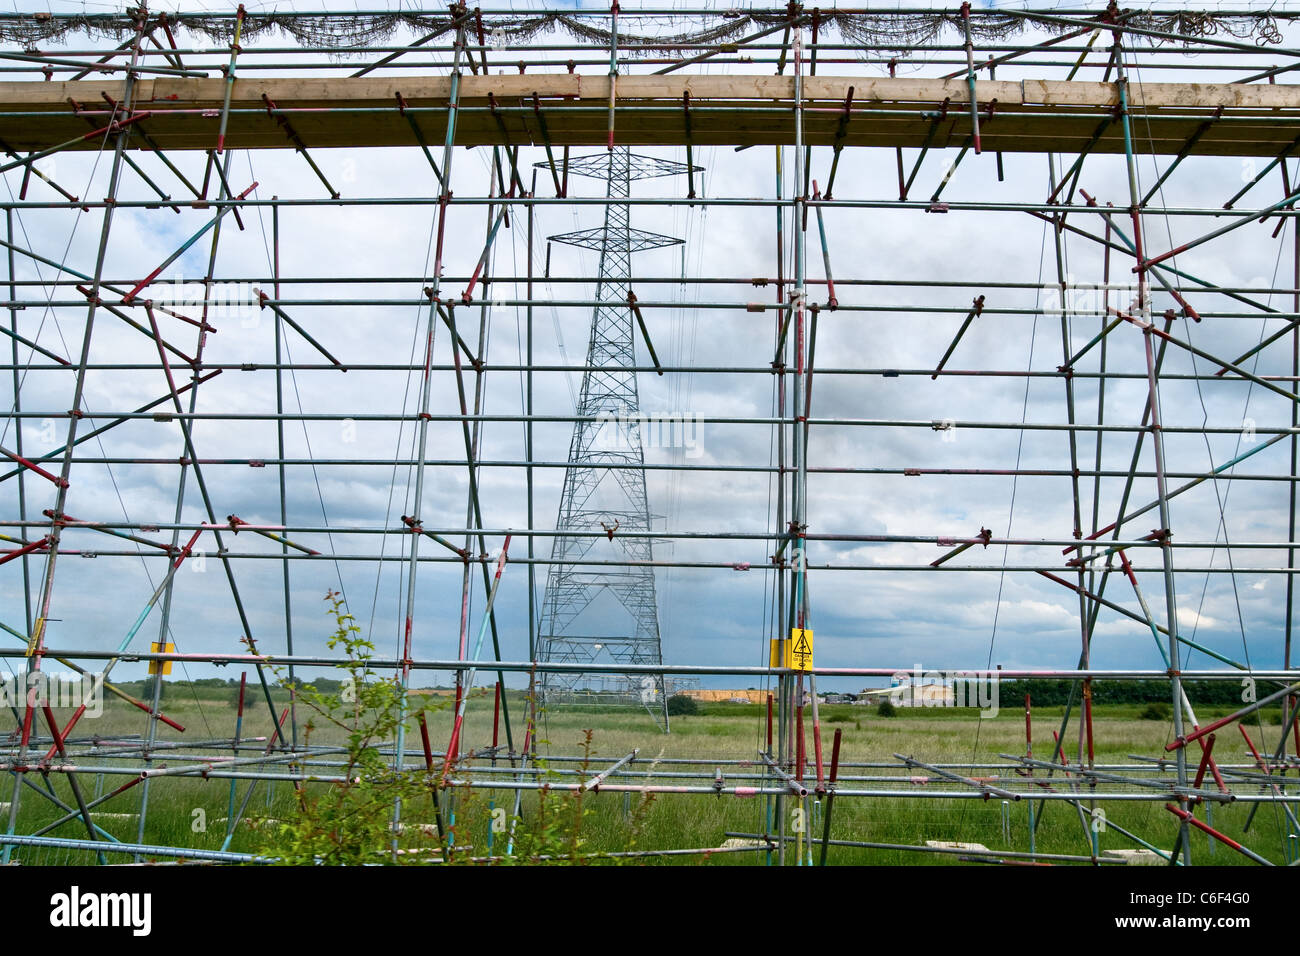 Scaffolding to protect the public from falling wires and the electric company that is renewing the overhead cables - Stock Image